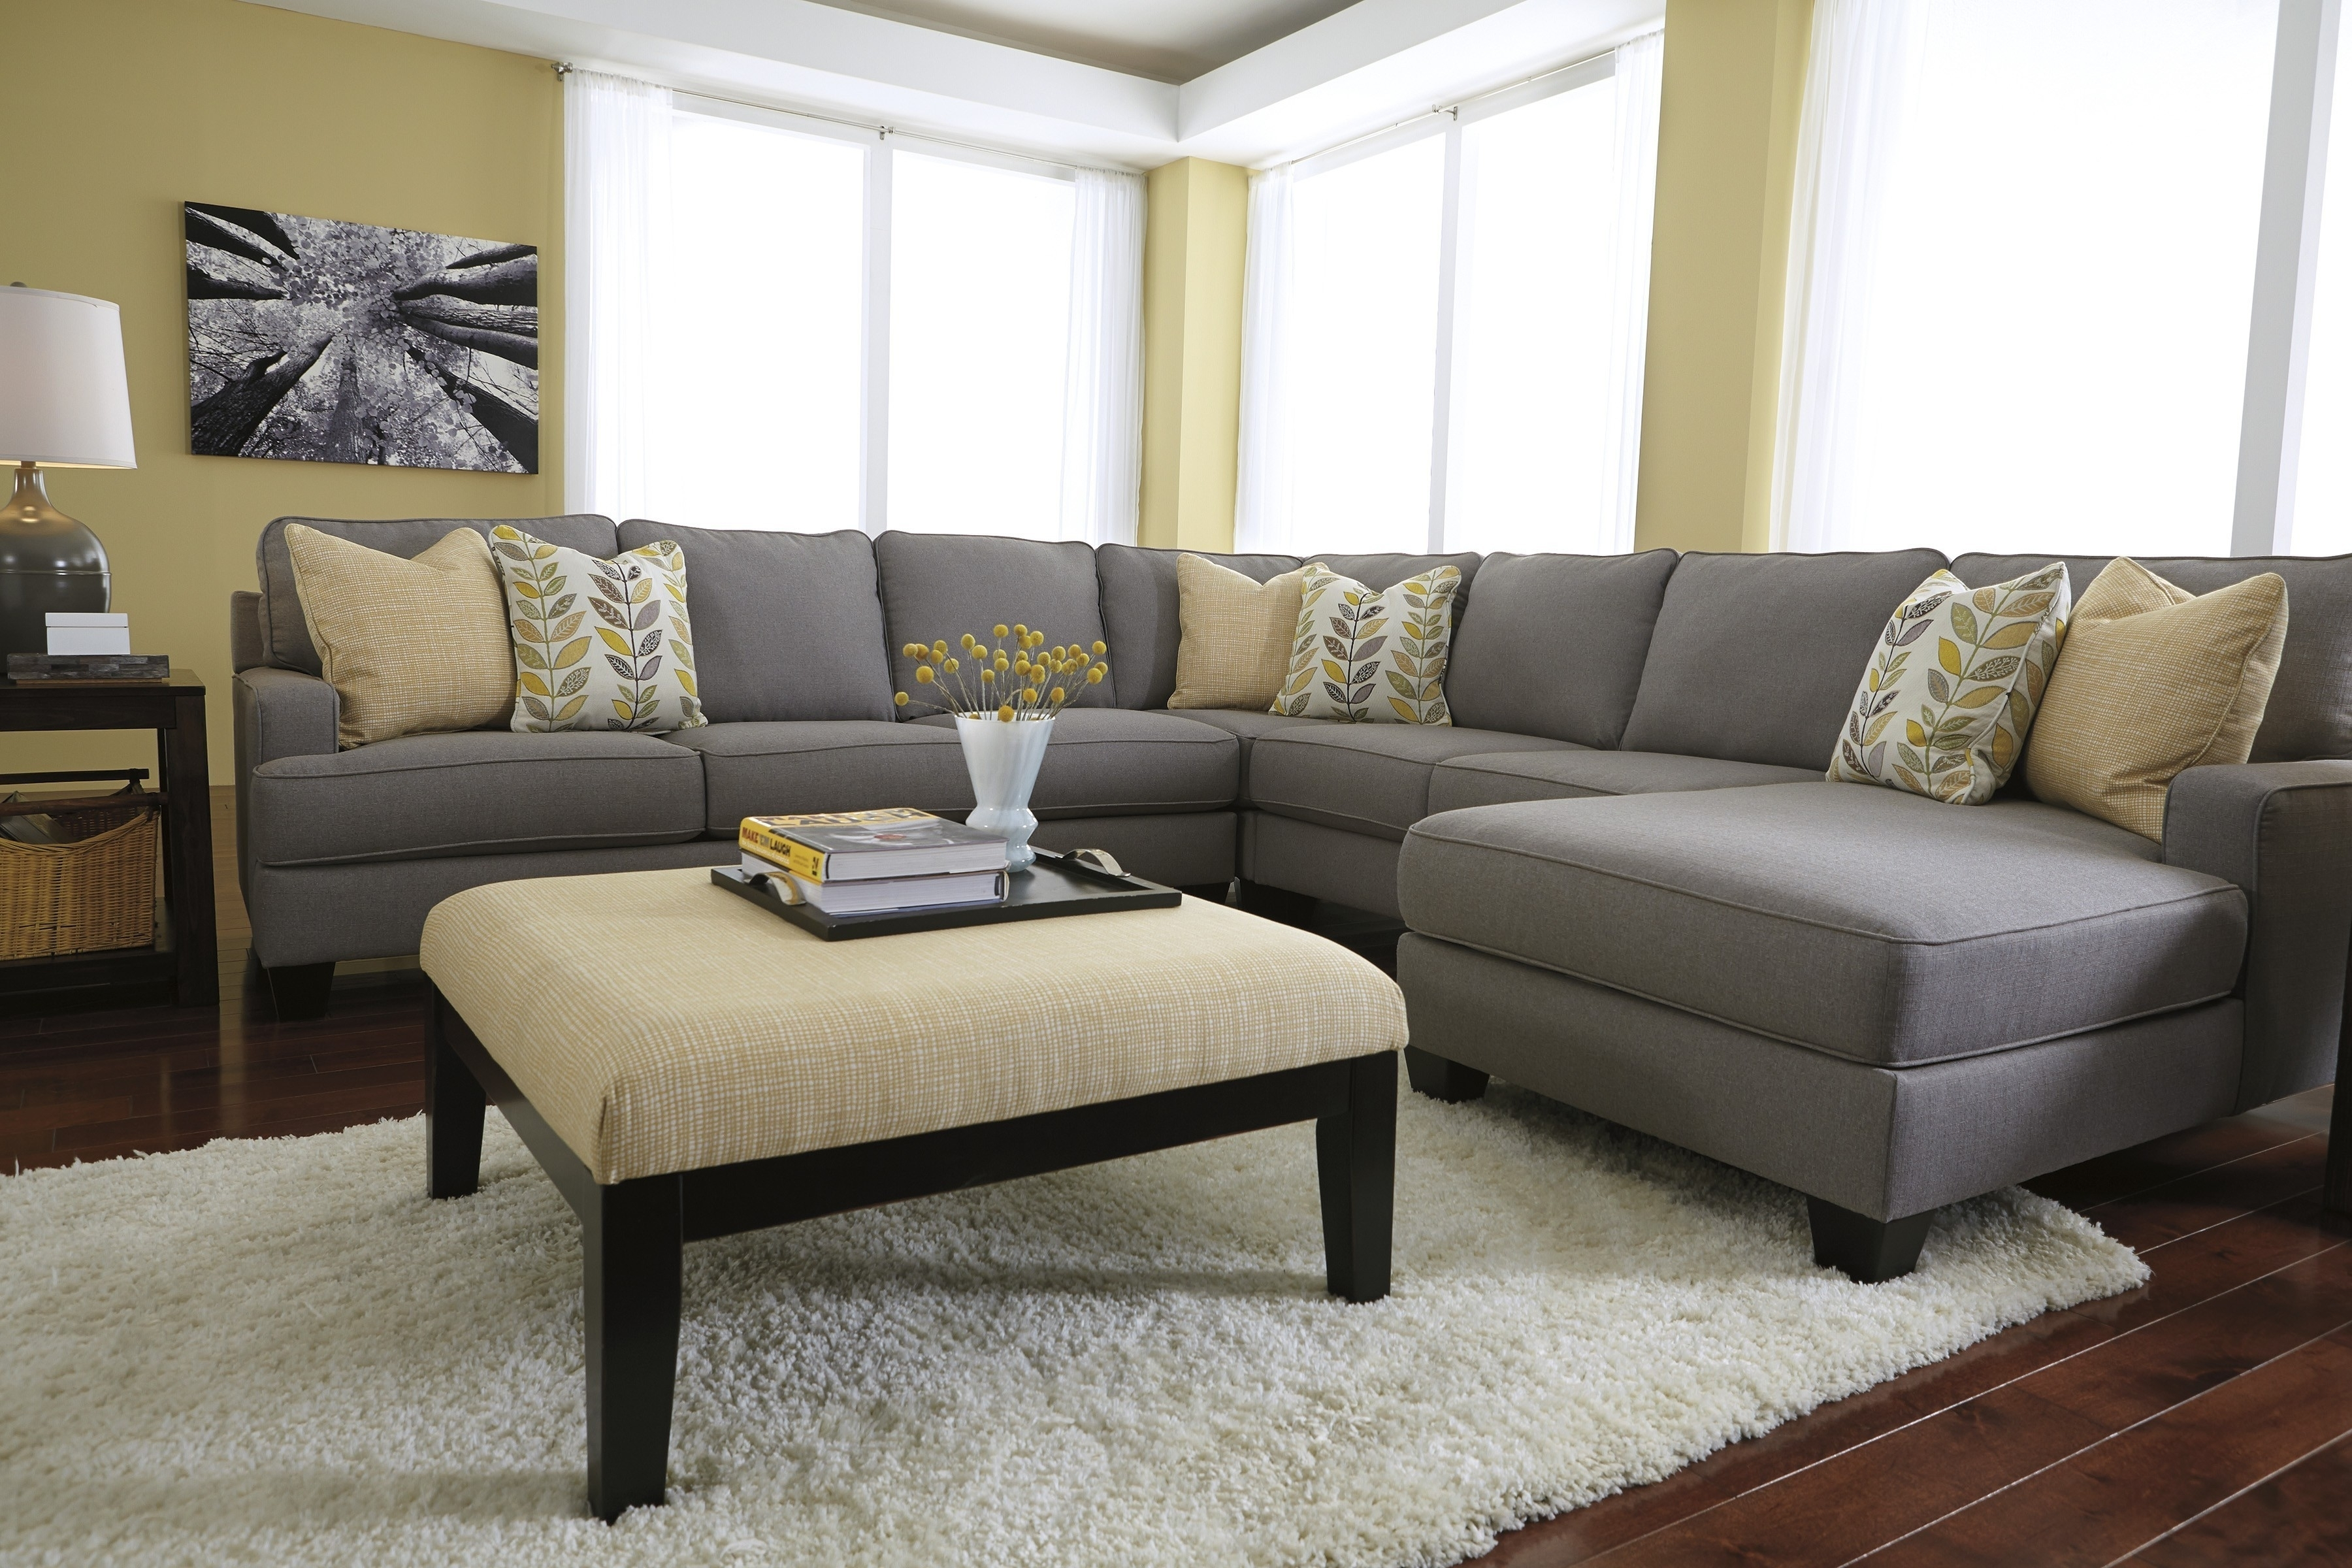 Amazing Oversized Sectional Sofas Cheap 24 With Additional Sleek Within Sleek Sectional Sofas (View 6 of 10)